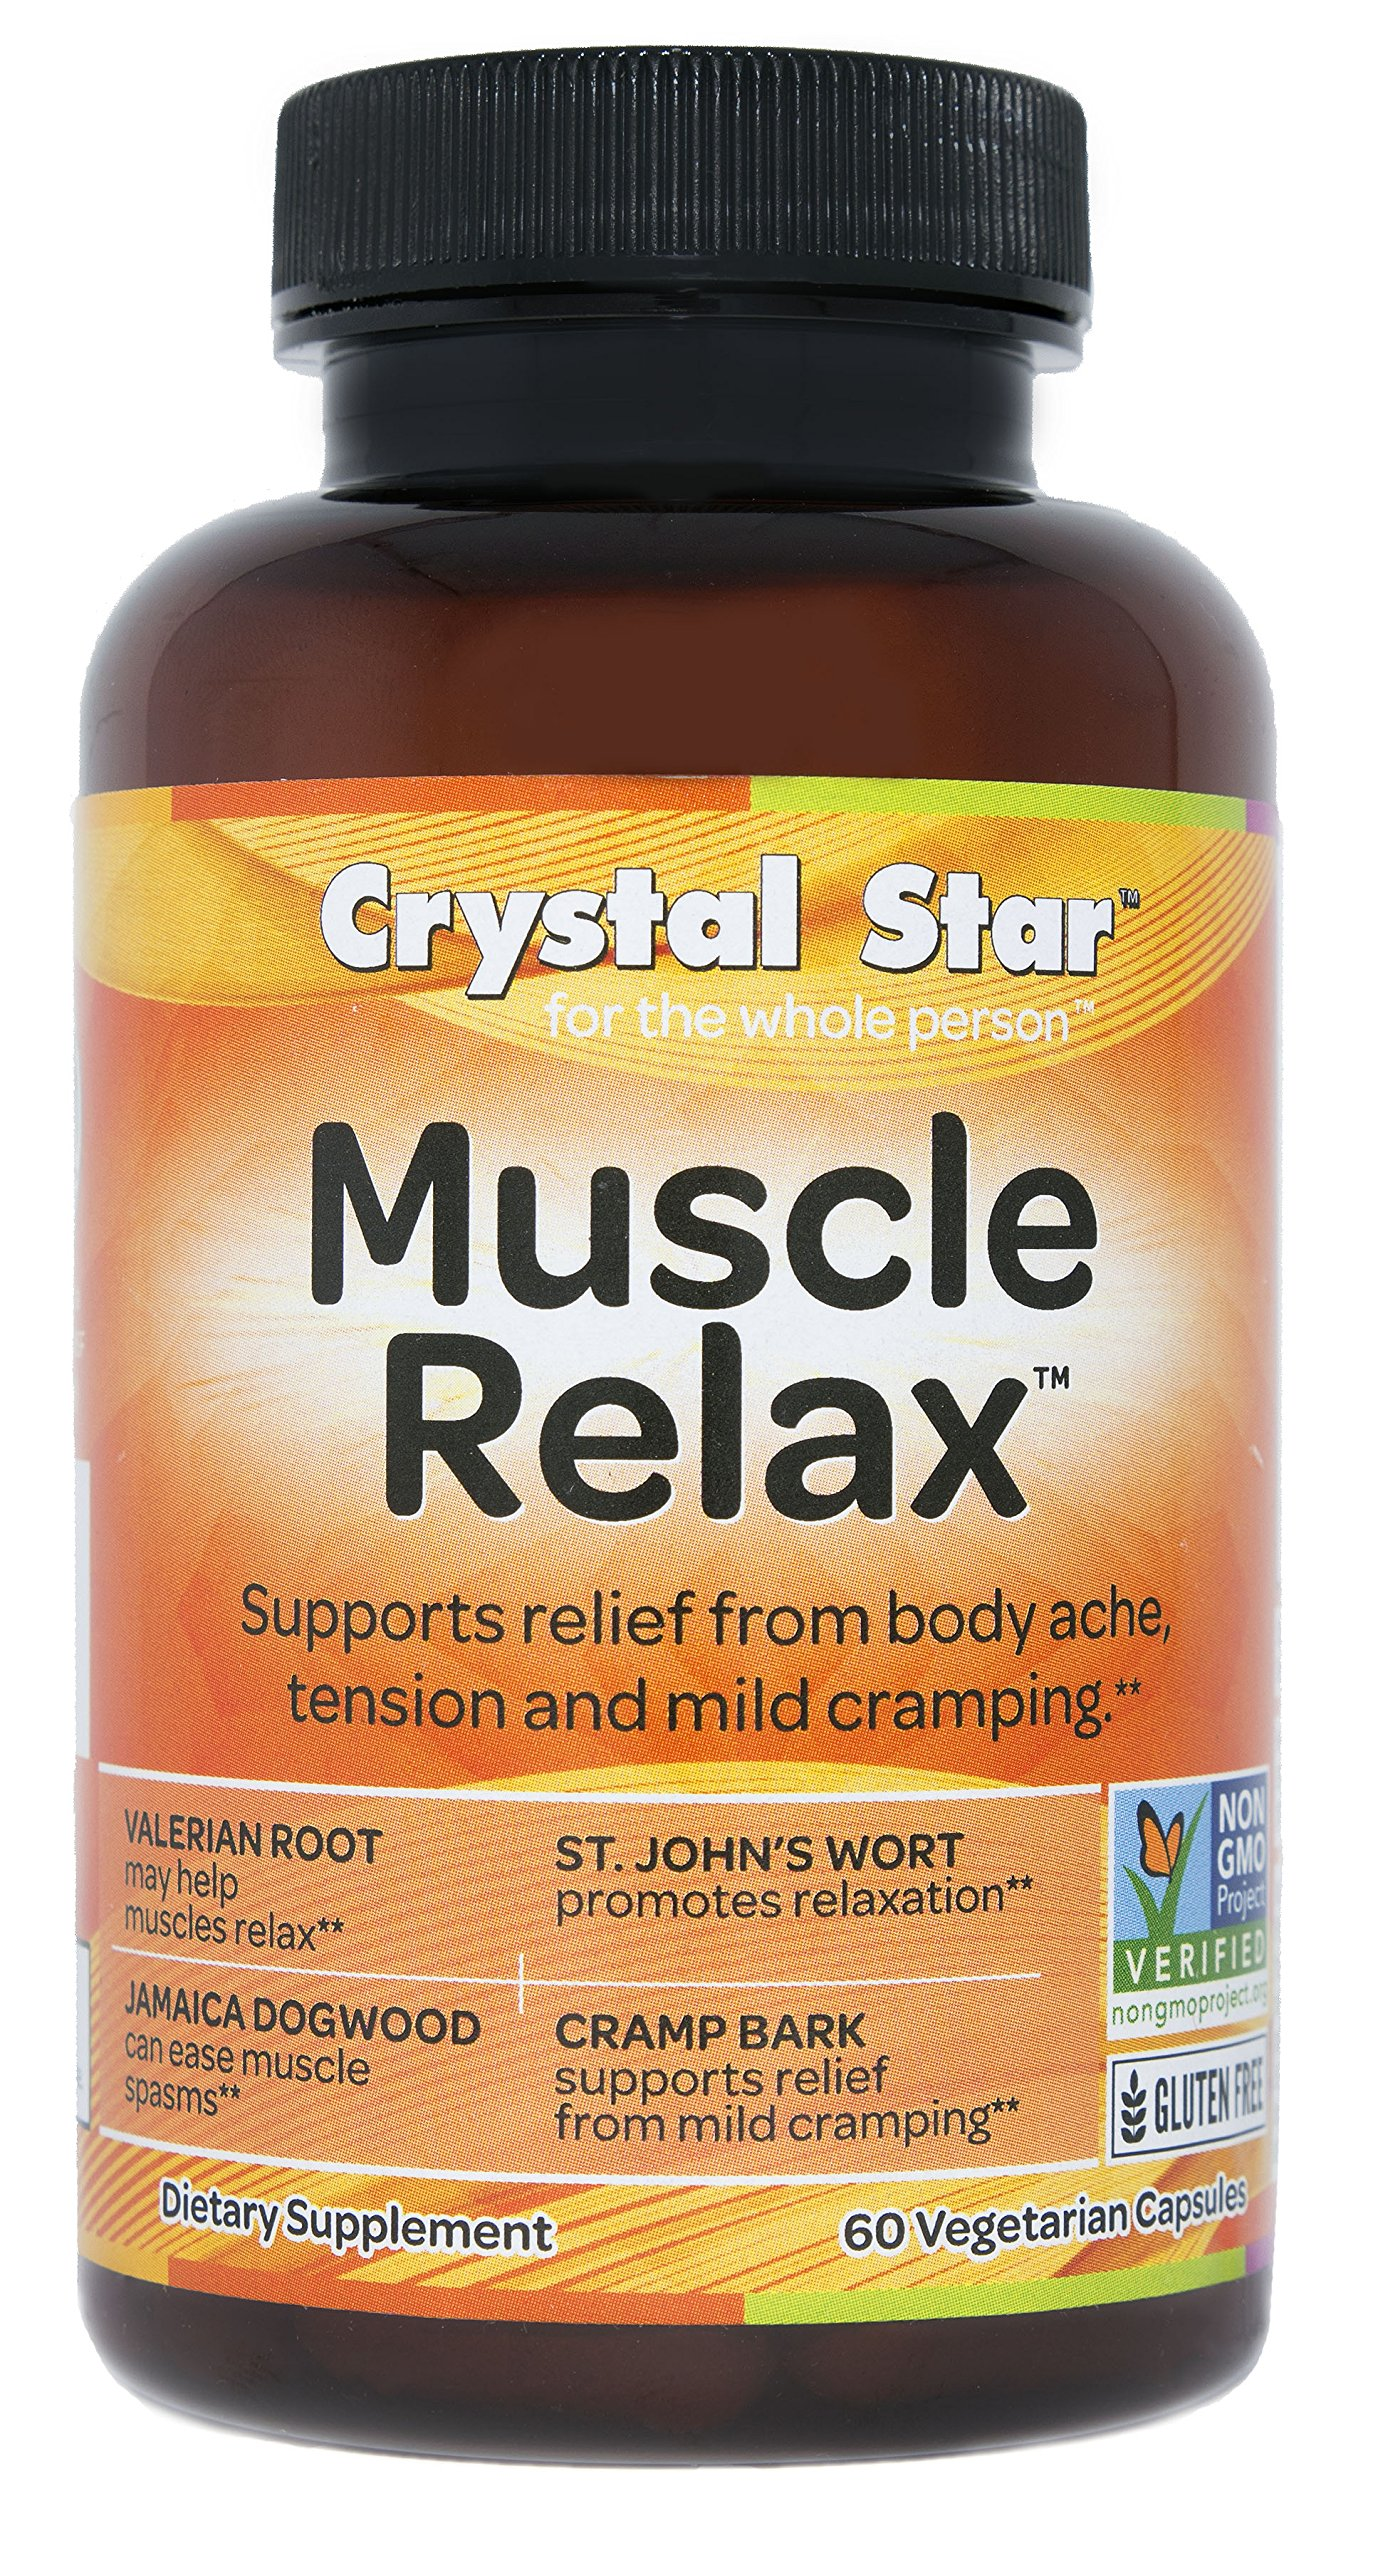 Crystal Star Muscle Relax, 60 Vegetarian Capsules by Crystal Star